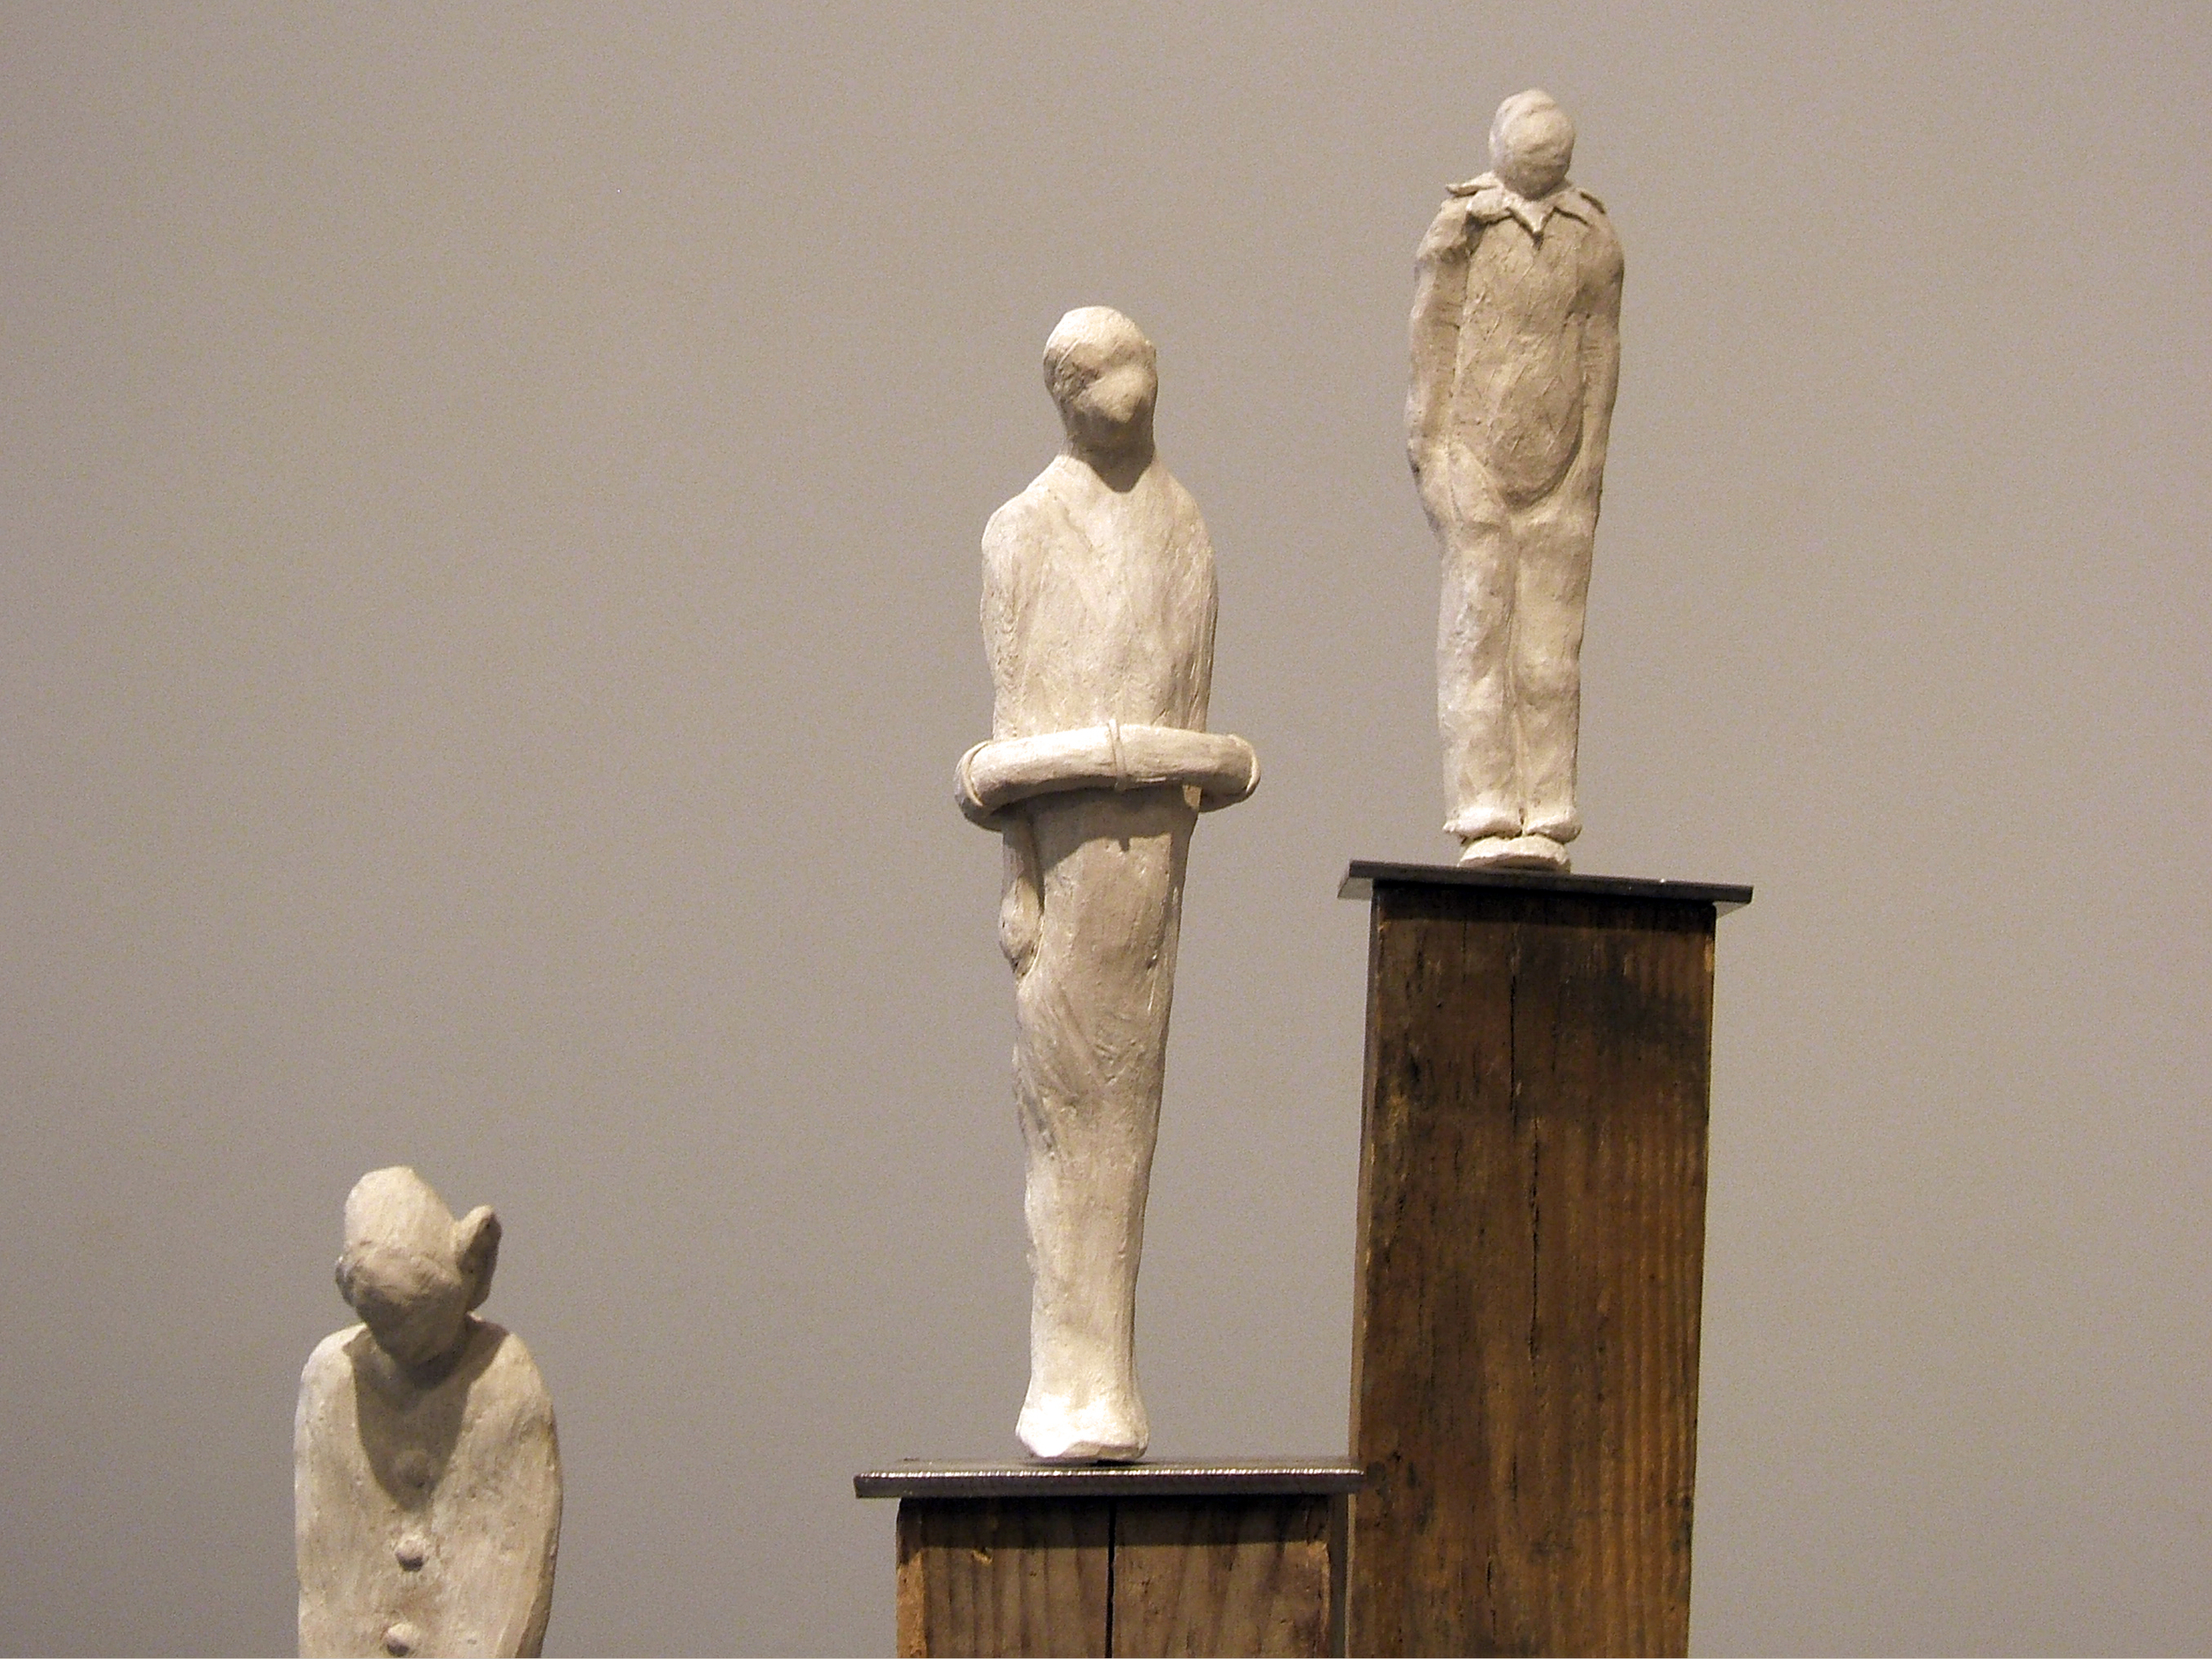 Piers , 2008, Ceramic, Wood, Steel, 40 x 48 x 36 Inches